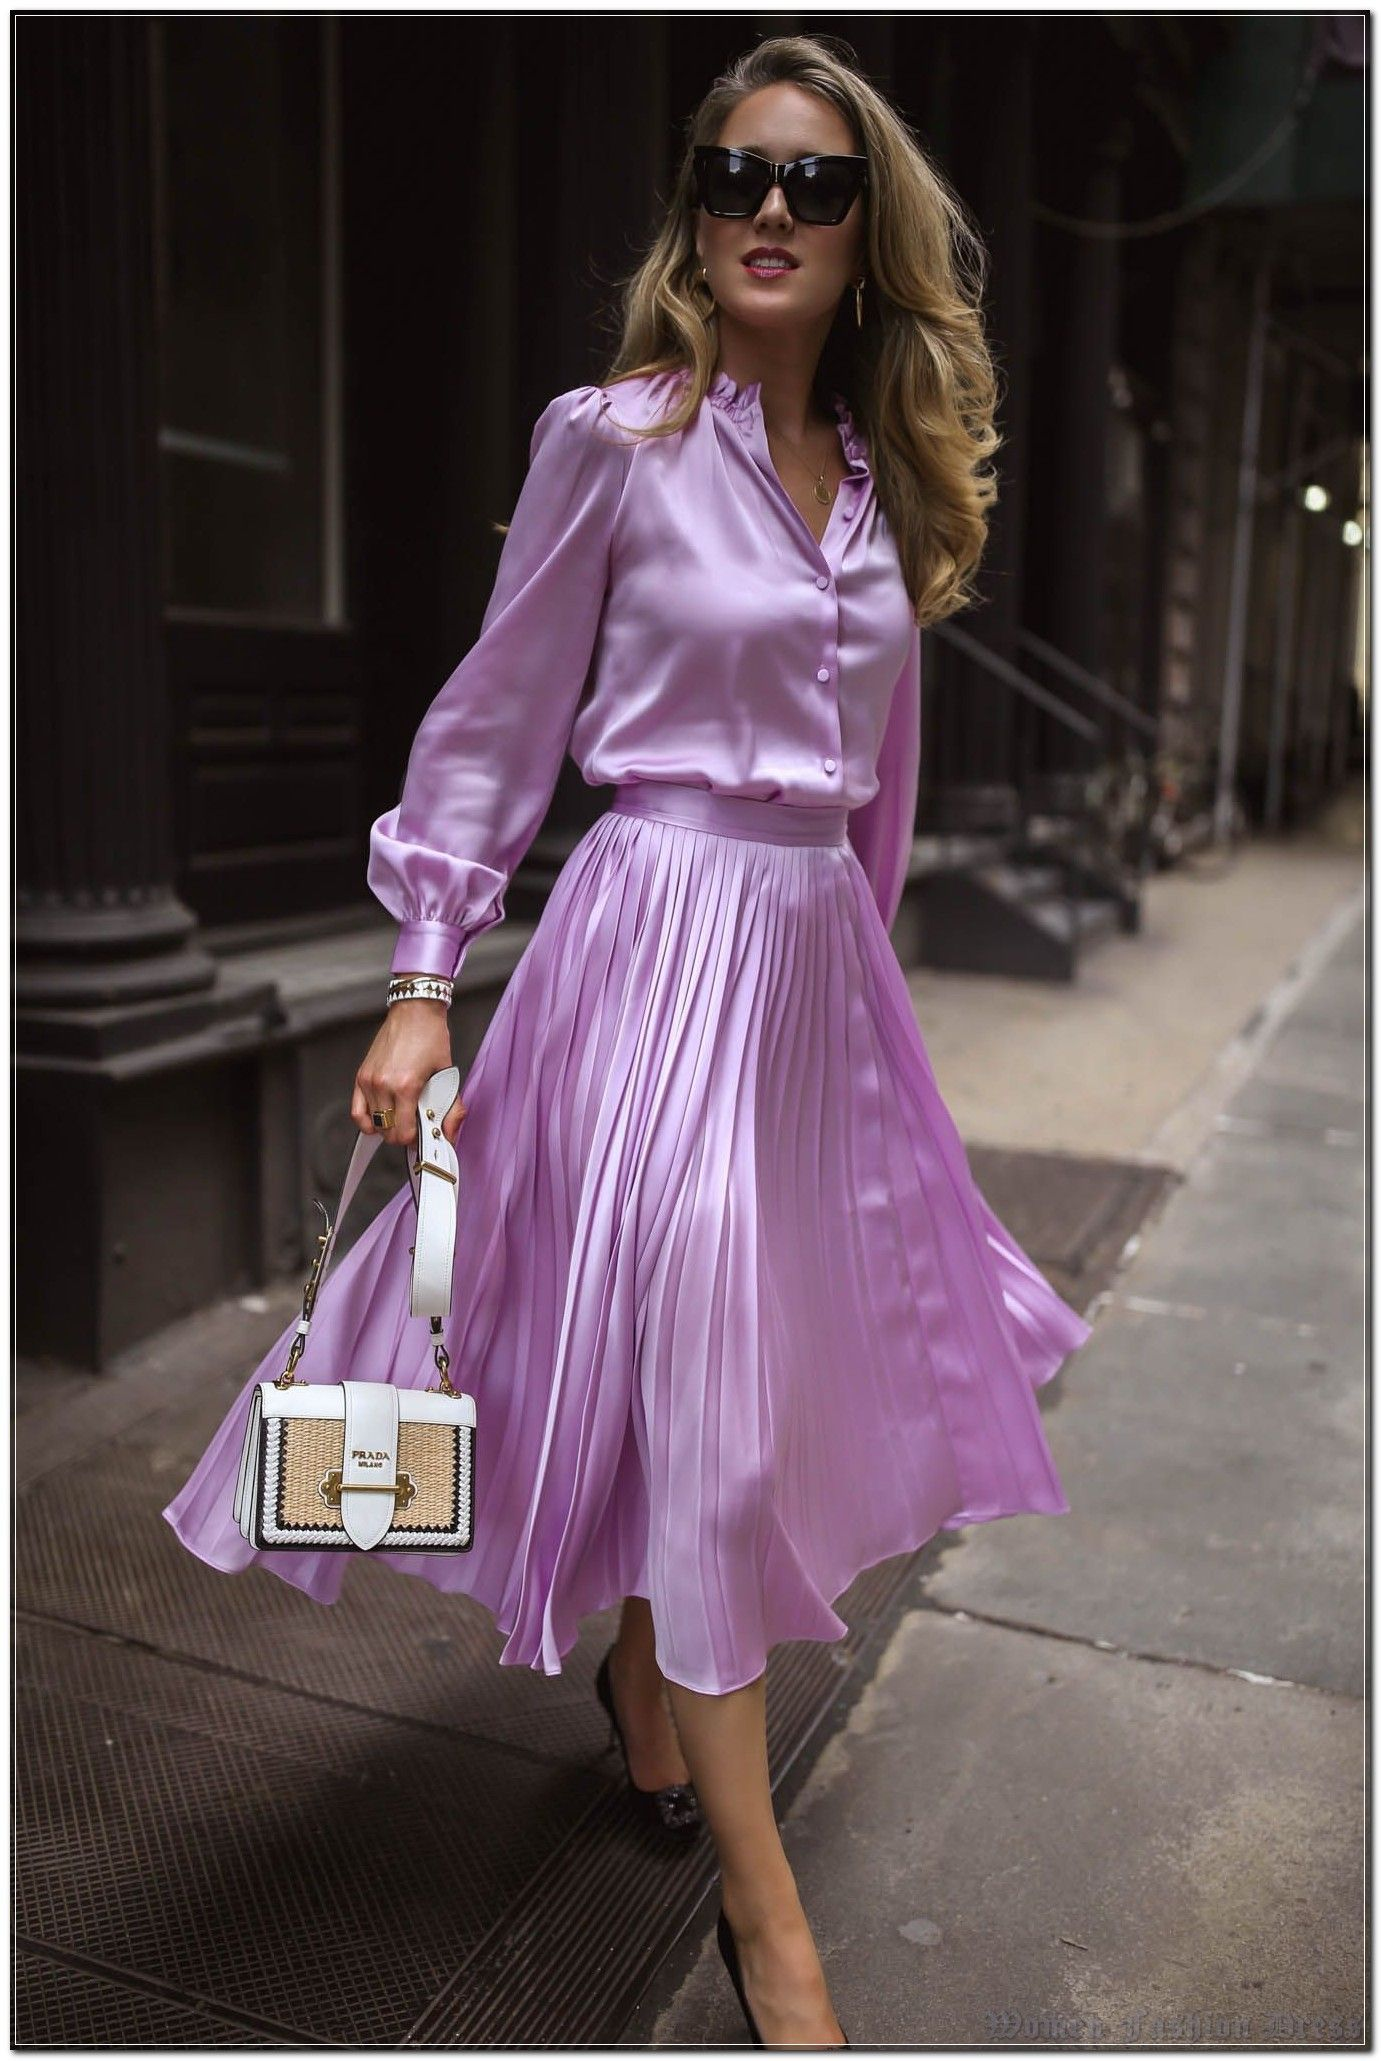 How To Become Better With Women Fashion Dress In 10 Minutes